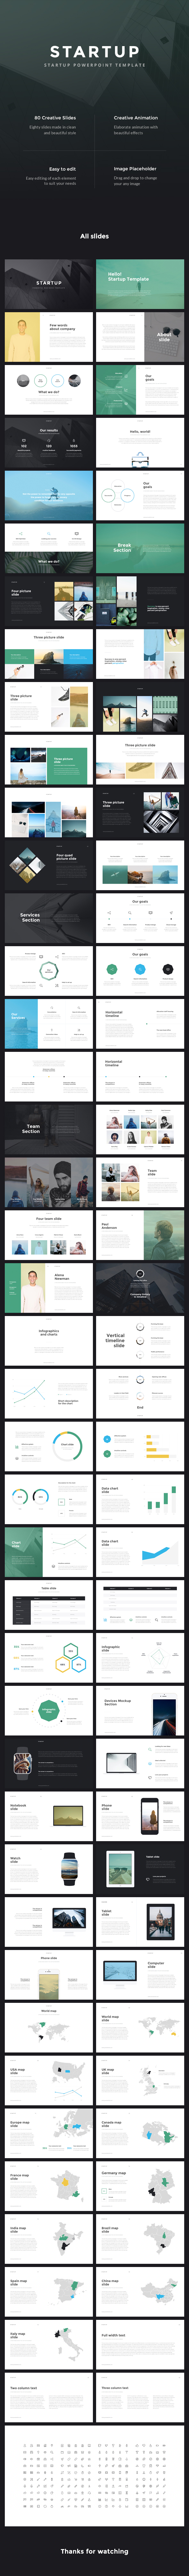 Startup - Pitch Deck PowerPoint Template - Business PowerPoint Templates